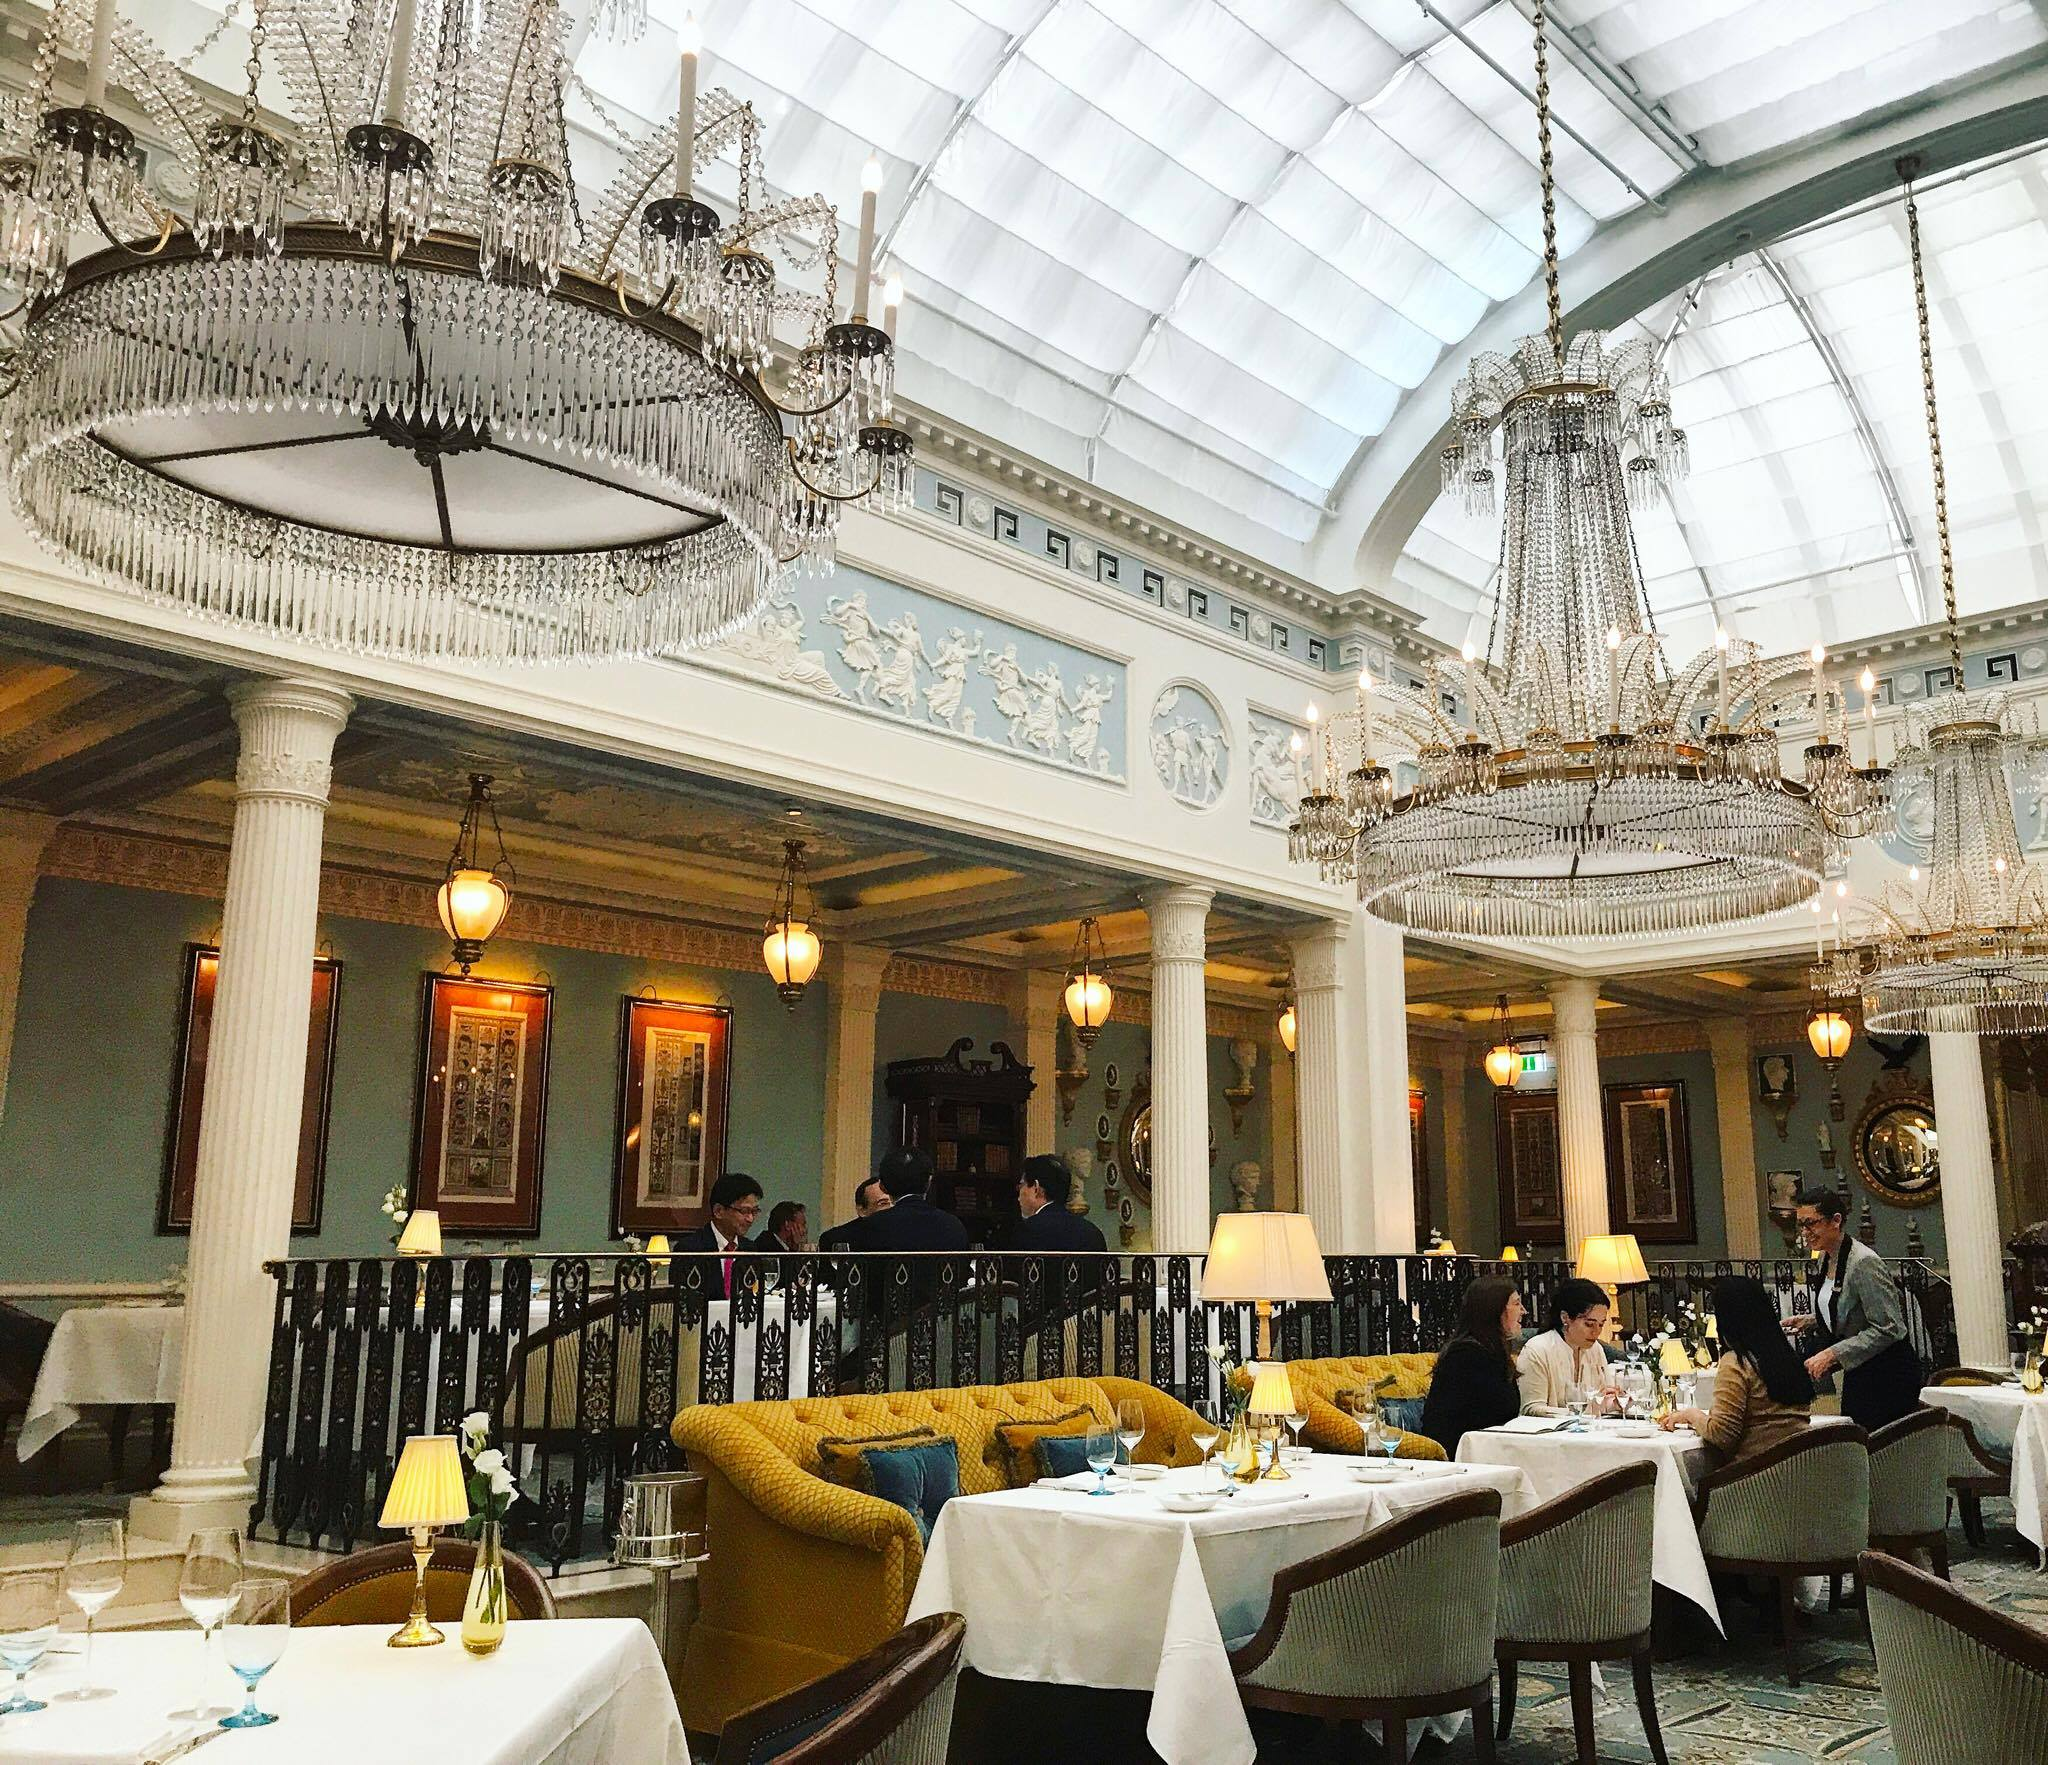 Luxury Chandeliers At Céleste Restaurant In London